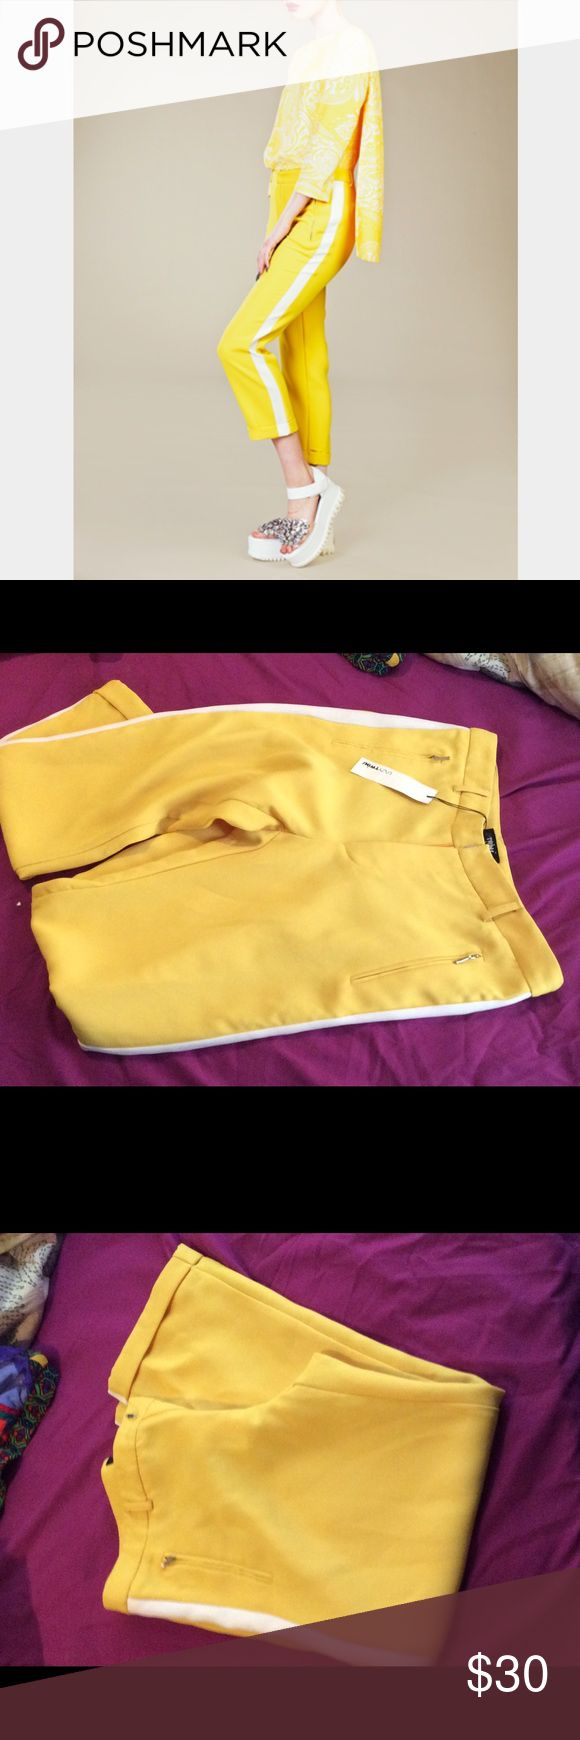 Women's Lazy Twin Yellow Trouser w/White Stripe Brand new yellow trouser with white stripe from Lazy Twins. Never worn! Absolutely adorable pant! Lazy Twins Pants Straight Leg